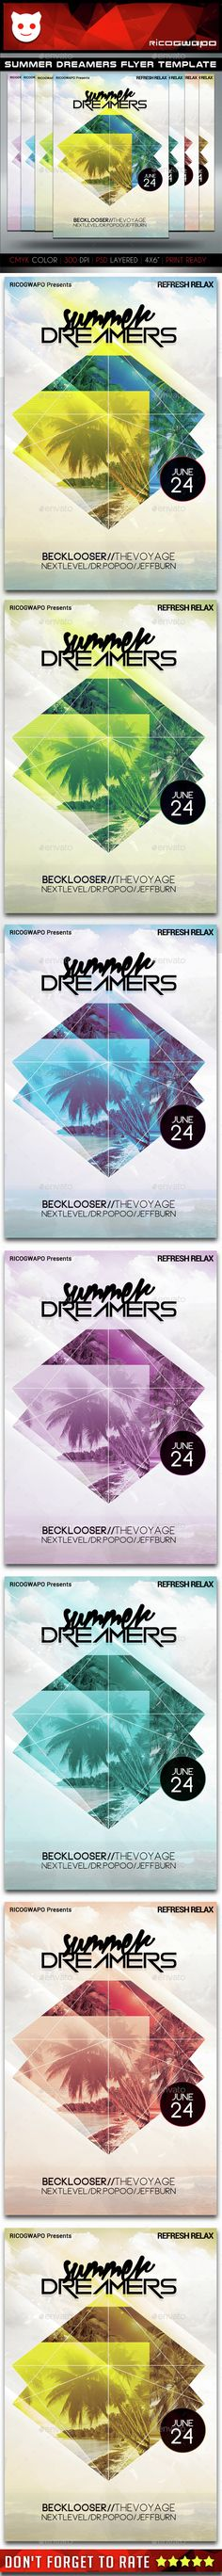 Summer Dreamers Flyer Template,alien, breakdance, colors, computer, dance, dj, drum bass, dubstep, electro, festival, flyer, graphic, hip hop, hot, house, indie, love, model, nightclub, party, peace, psd, ricogwapo, rock, speaker, summer, techno, template, underground, urban